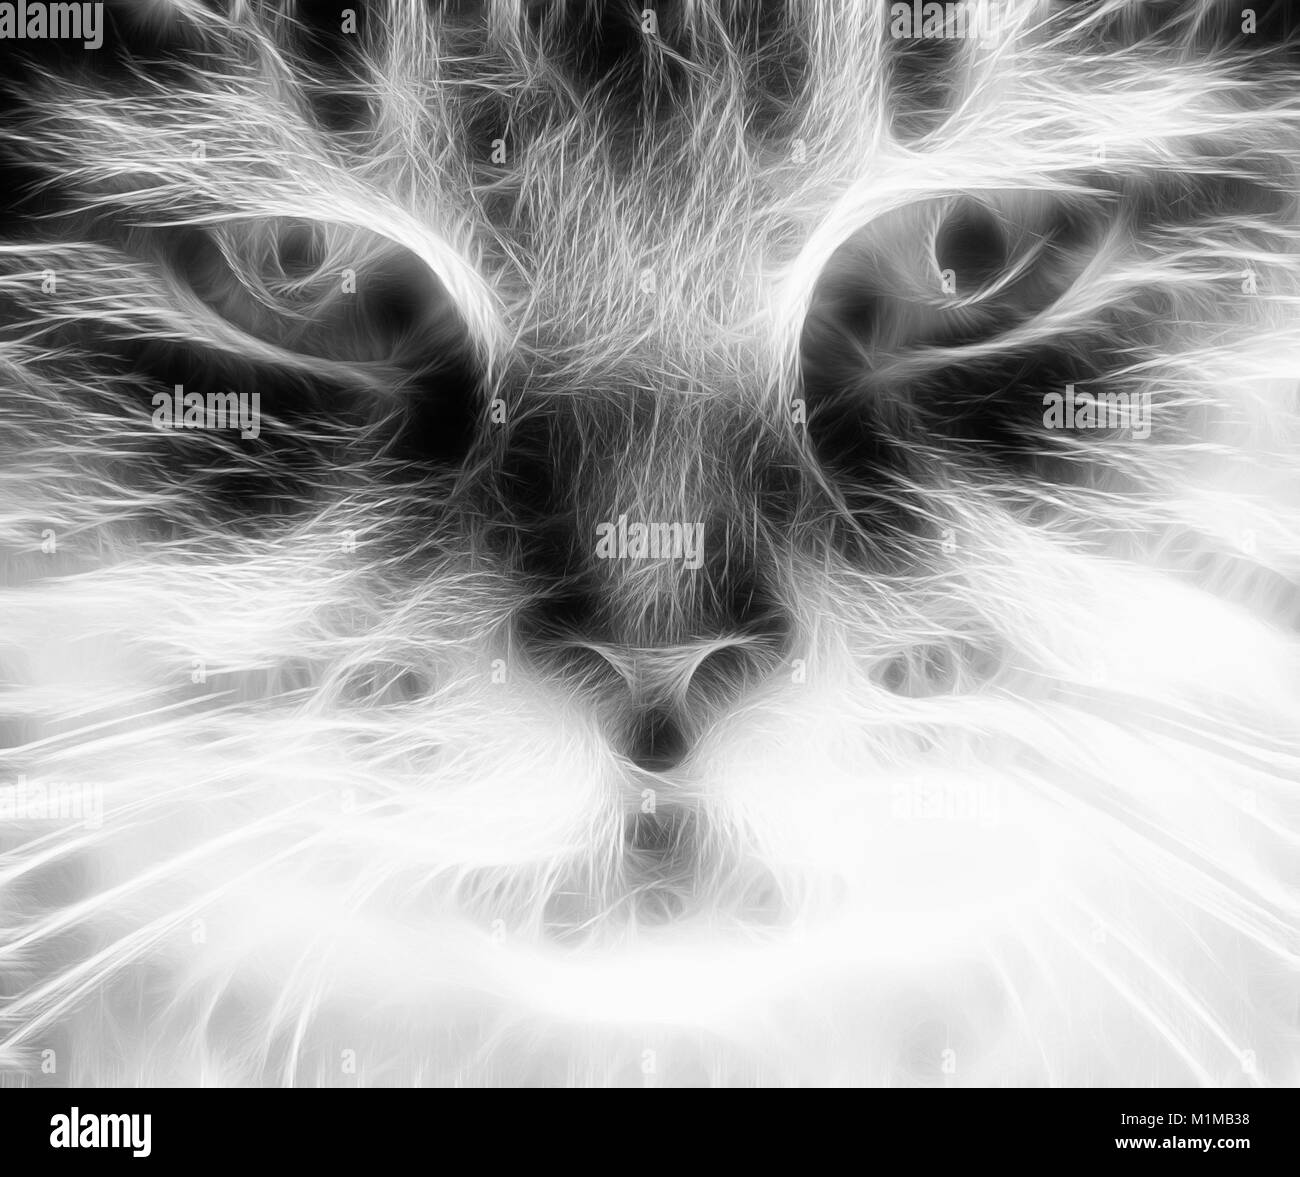 black and white abstract fractal cat portrait - Stock Image